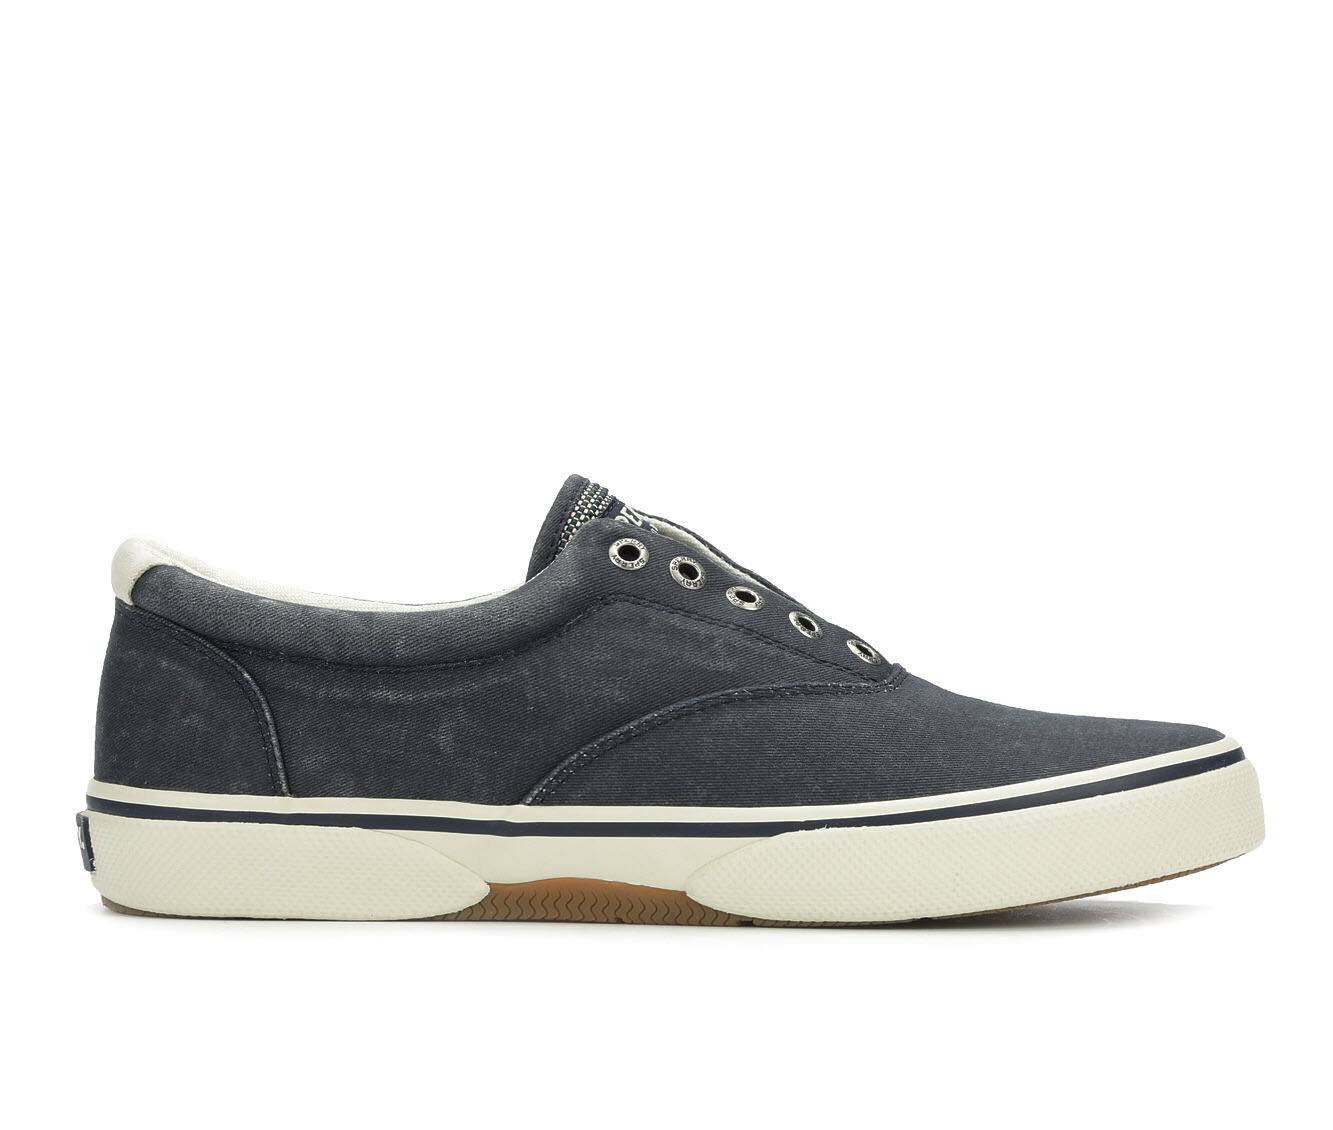 Men's Sperry Halyard Laceless Casual Shoes Salt Wash Navy